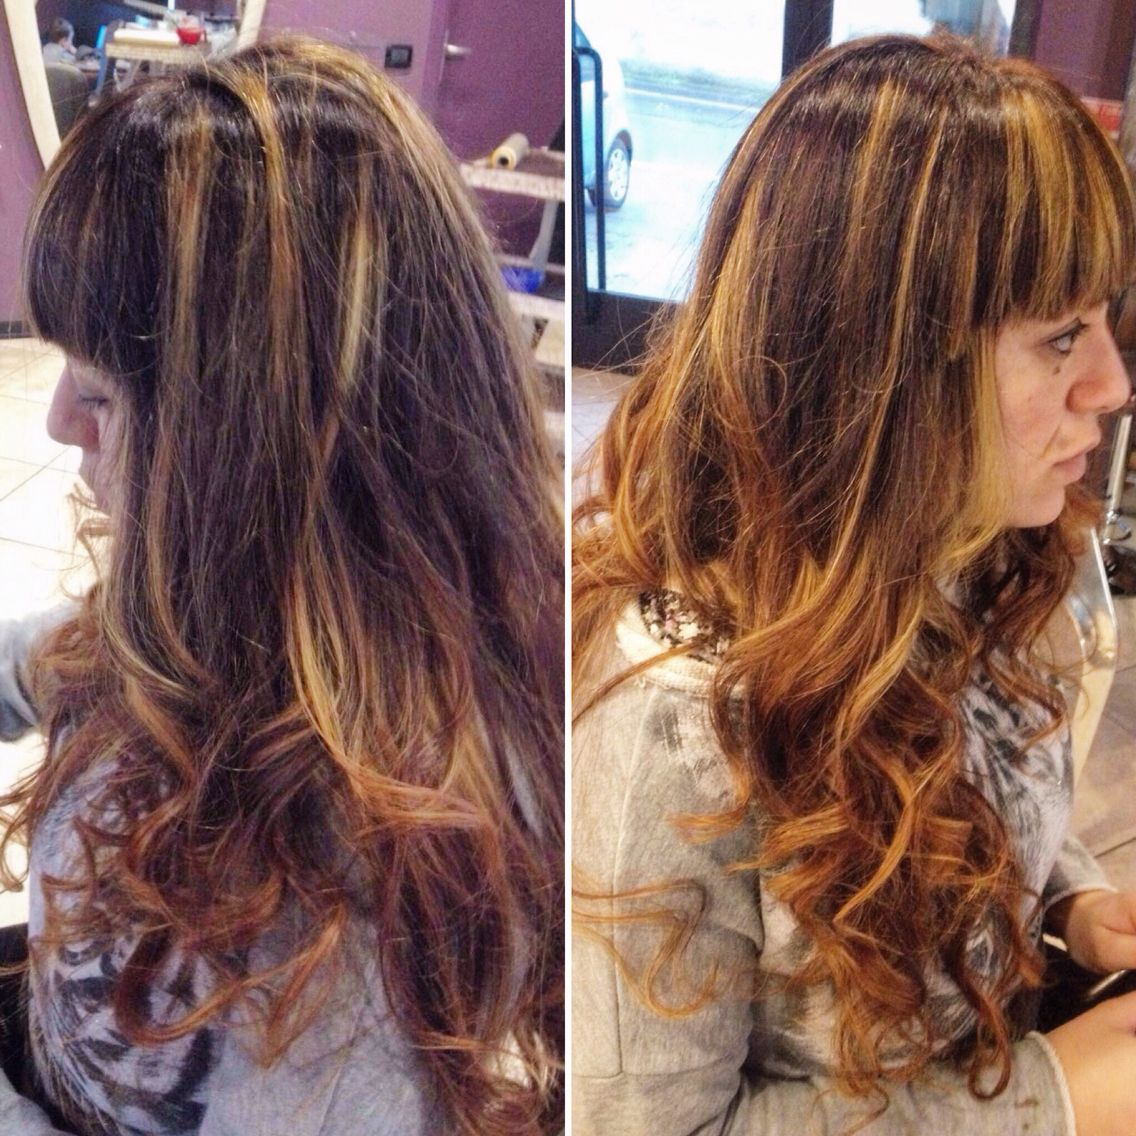 Curly hairs by Semplicemente Lara